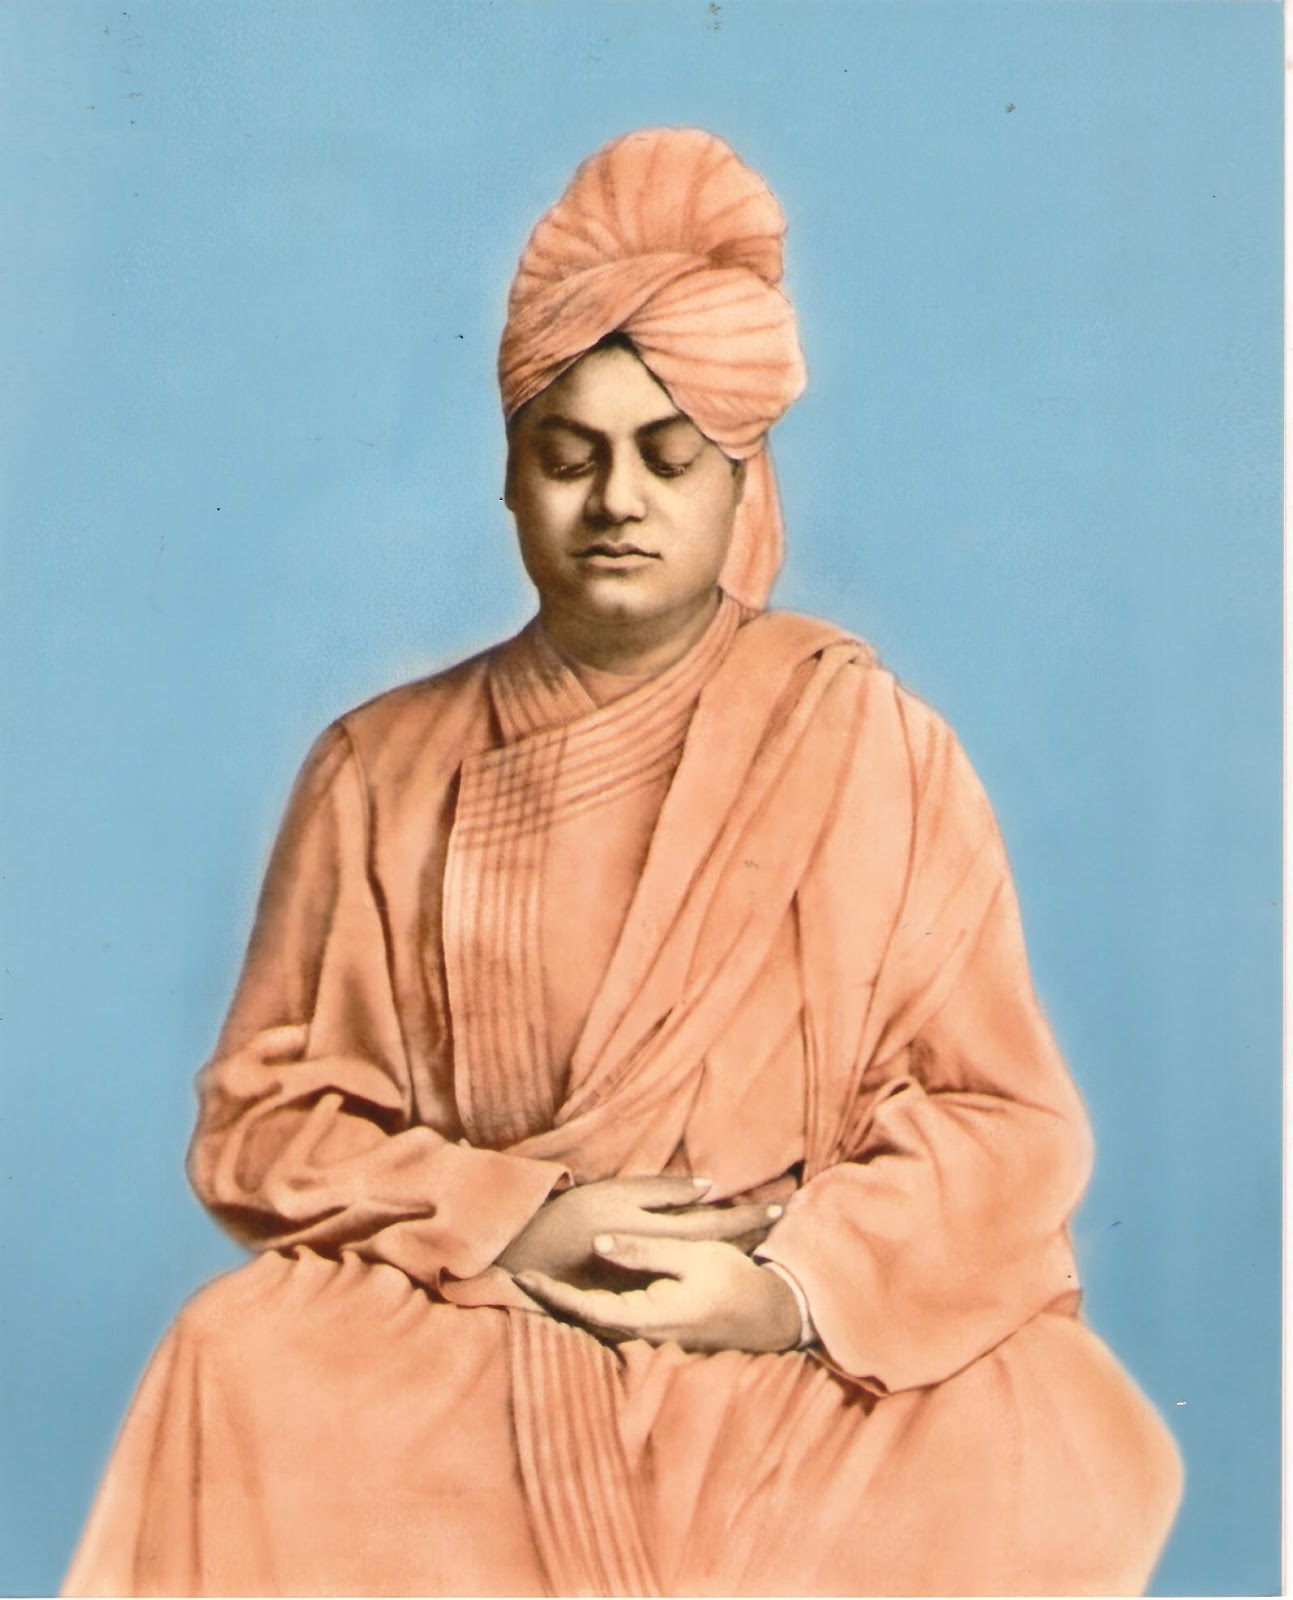 influence and legacy of swami vivekananda Awakening of india at the call of swami vivekananda is a monumental legacy the message of pure and blazing patriotism, the love of the indian people as one whole, is another great ideology he projected through his lectures and utterances.